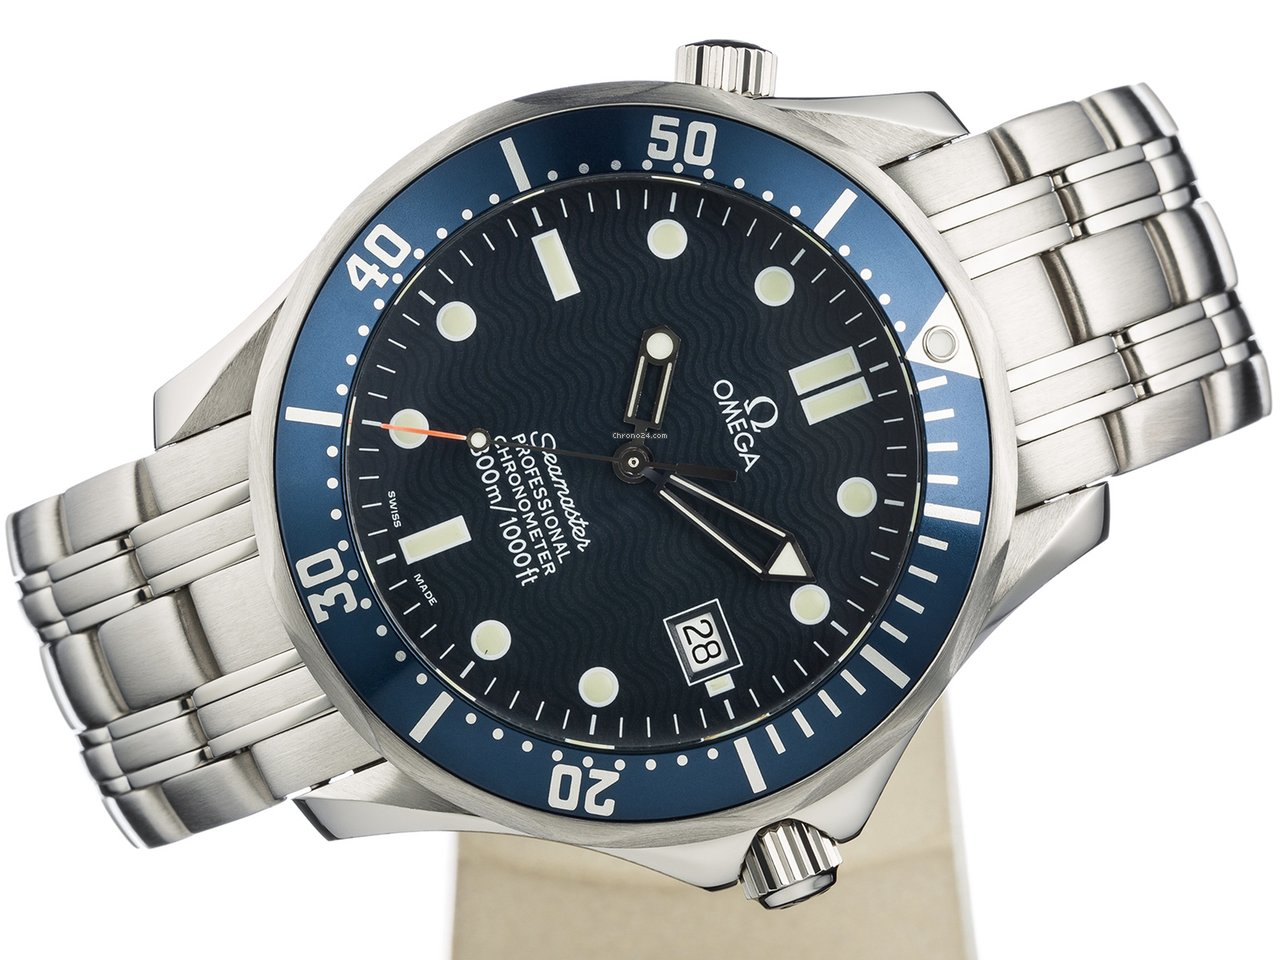 65a99fc5790 Omega SEAMASTER PROFESSIONAL CHRONOMETER 300M JAMES BOND DIVER for ...